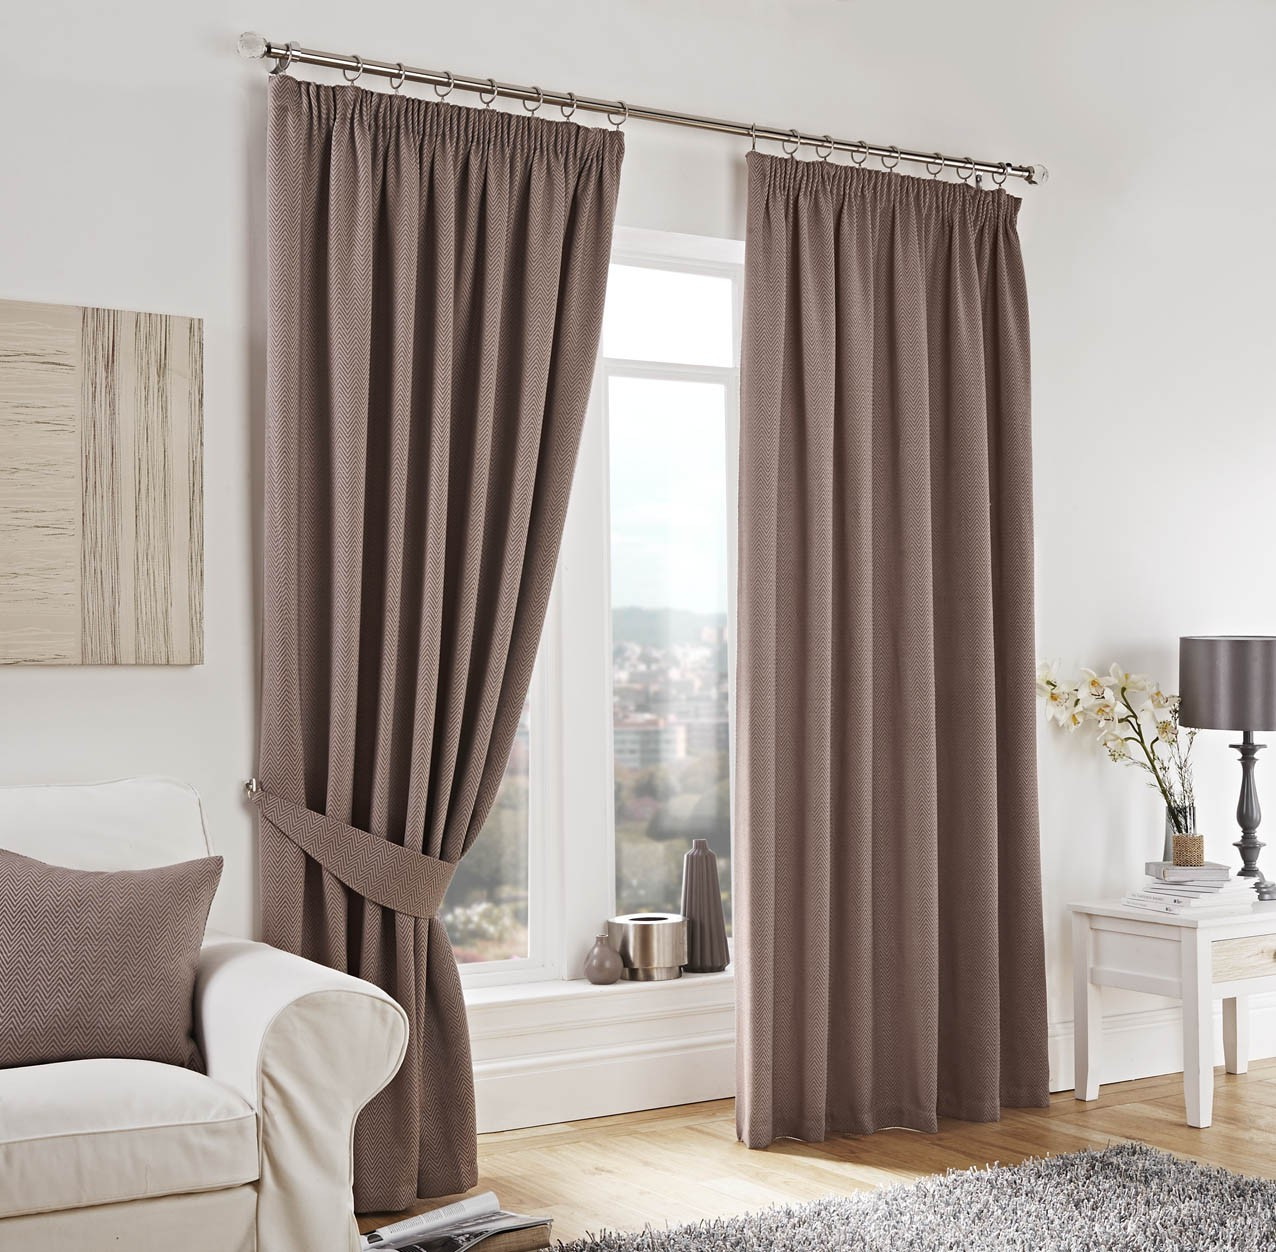 White Cotton Valance Curtains Make Your Own Curtains